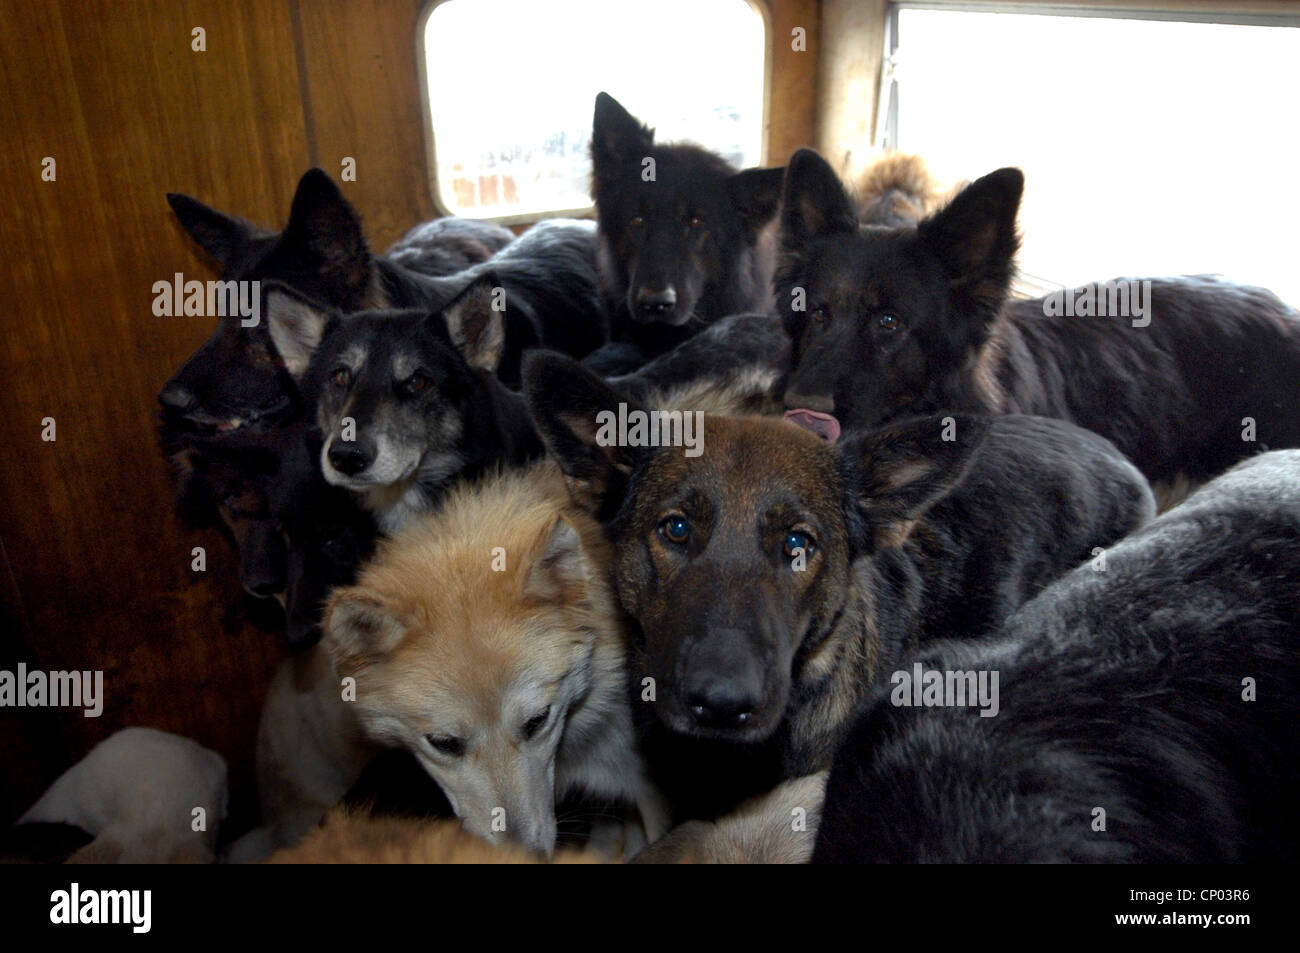 domestic dog (Canis lupus f. familiaris), crowded scruffy dogs in a room, animal hoarding,  , - Stock Image